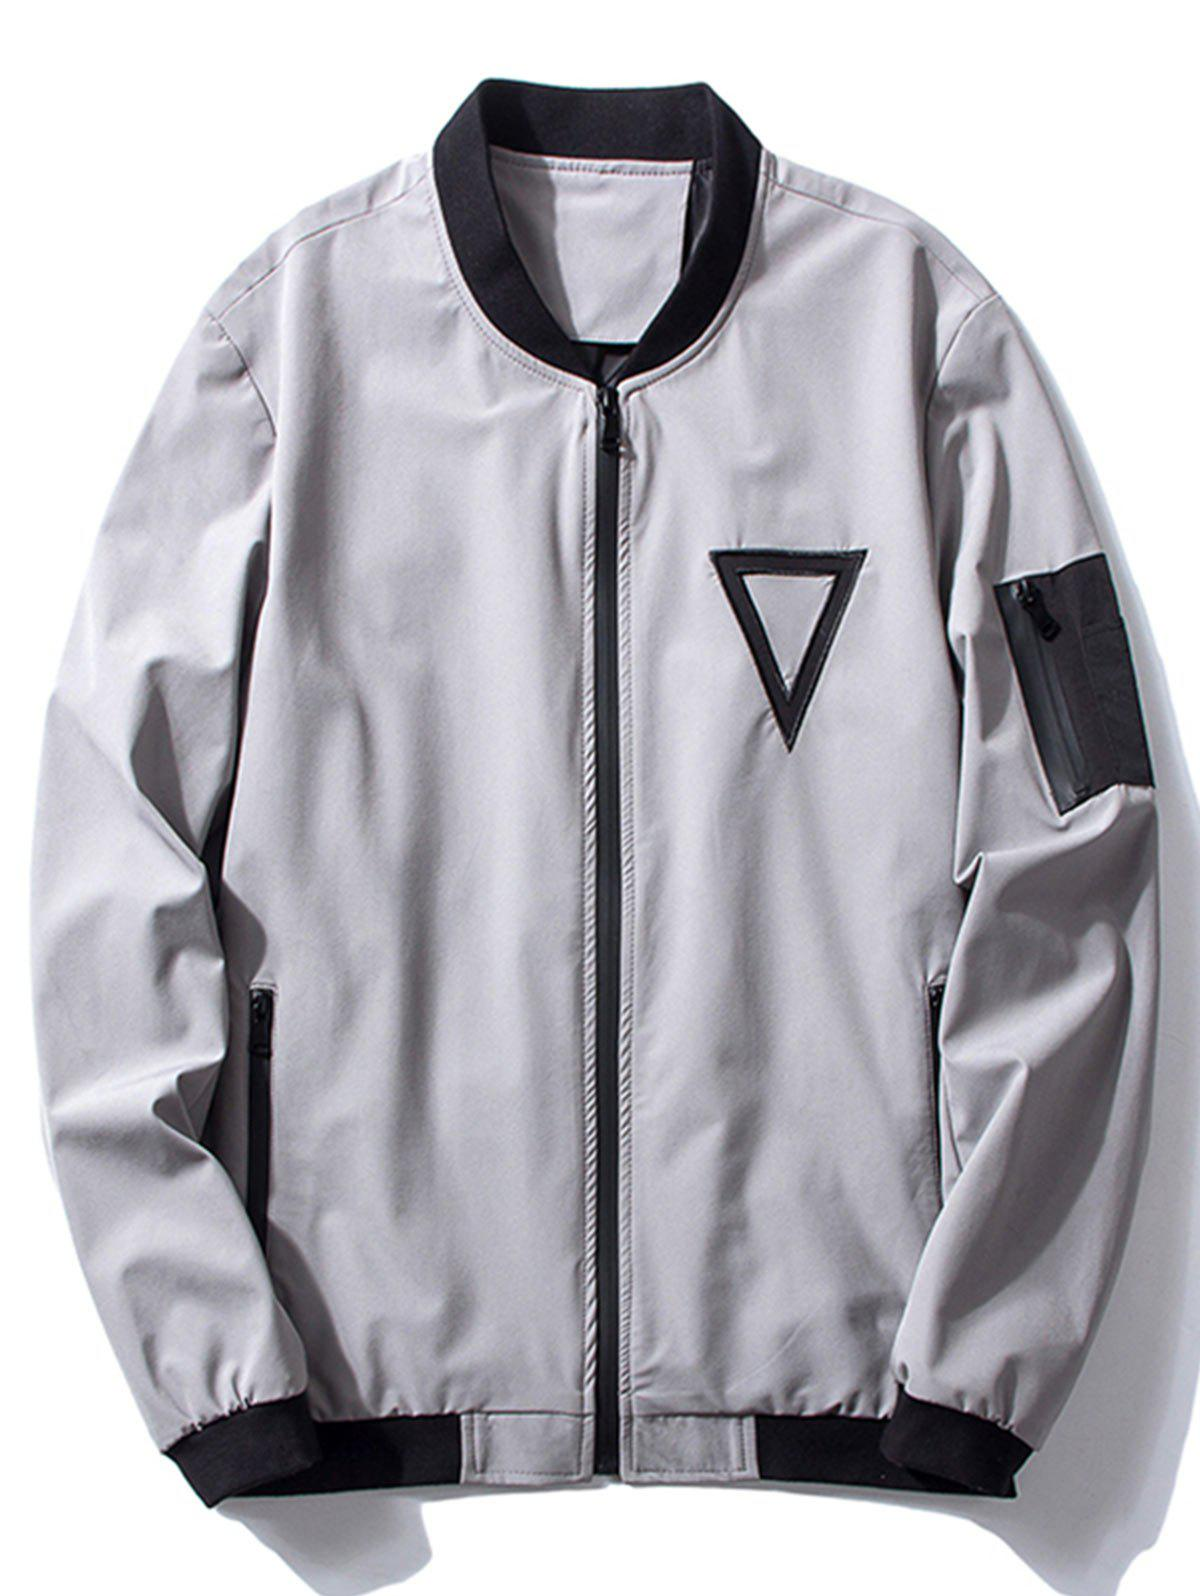 Stand Collar Triangle Embroidered Bomber Jacket 224516104